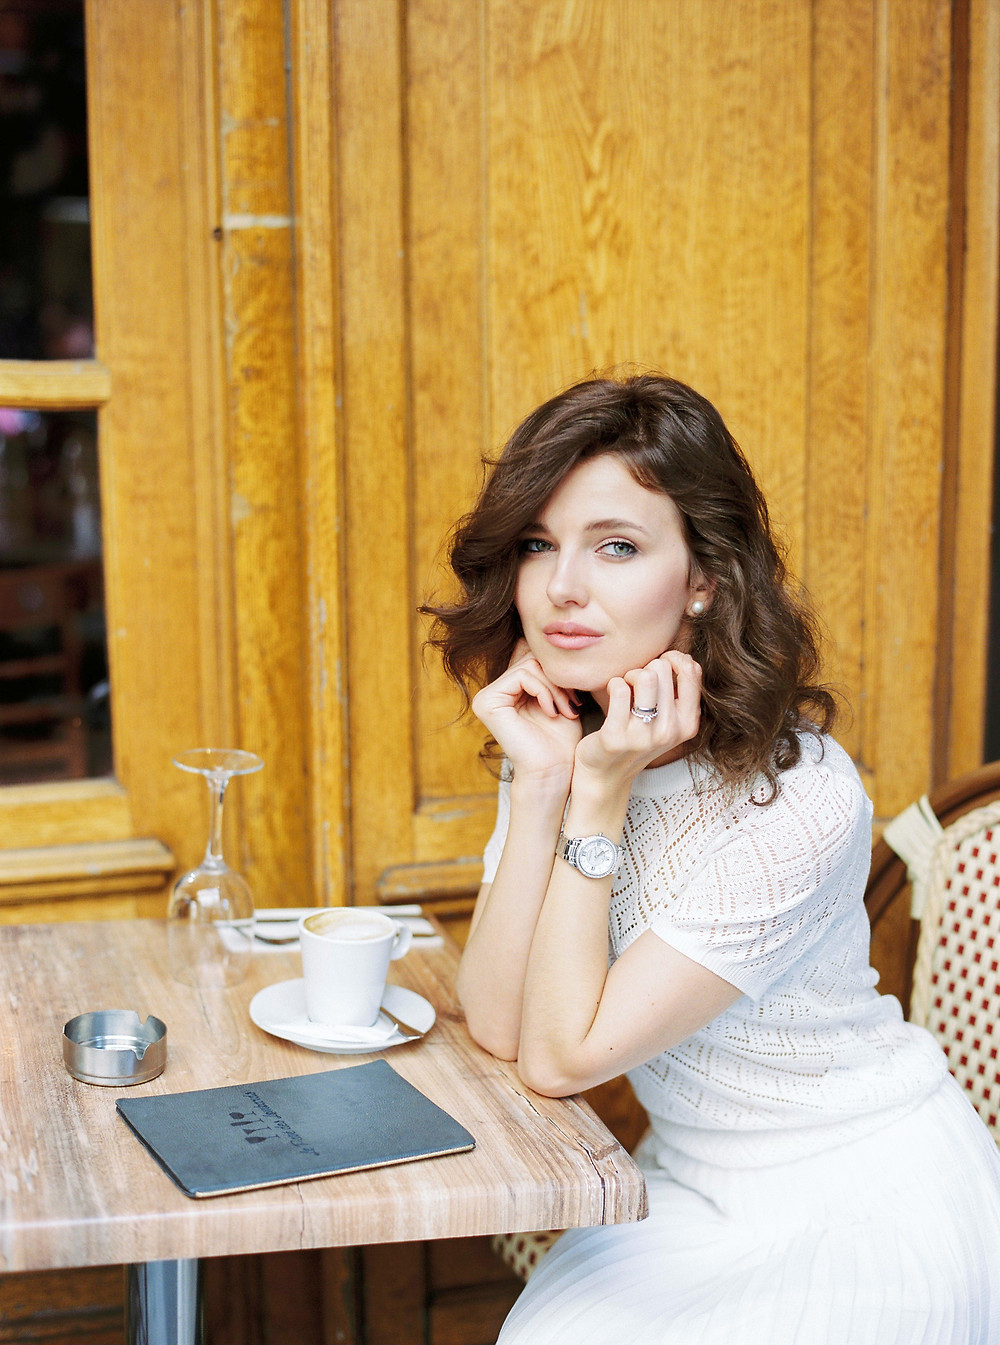 Portrait photoshoot ideas in Paris of the girl in cafe